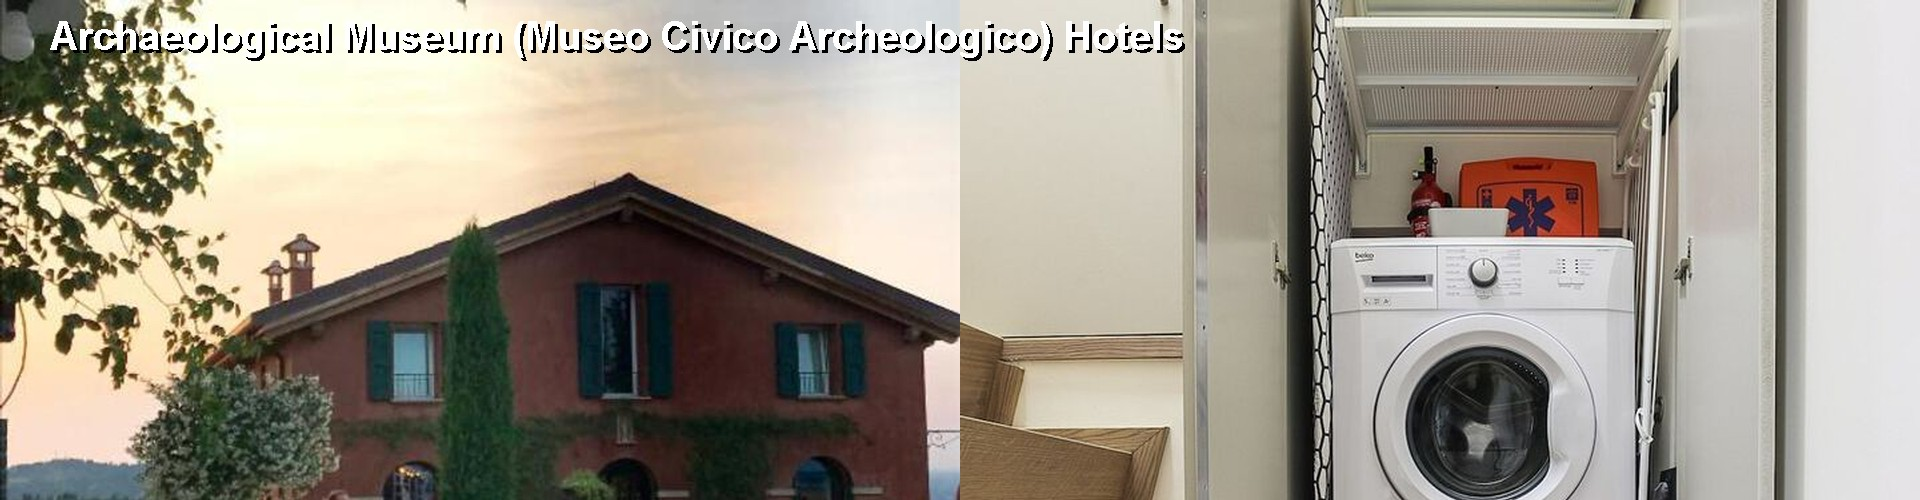 5 Best Hotels near Archaeological Museum (Museo Civico Archeologico)